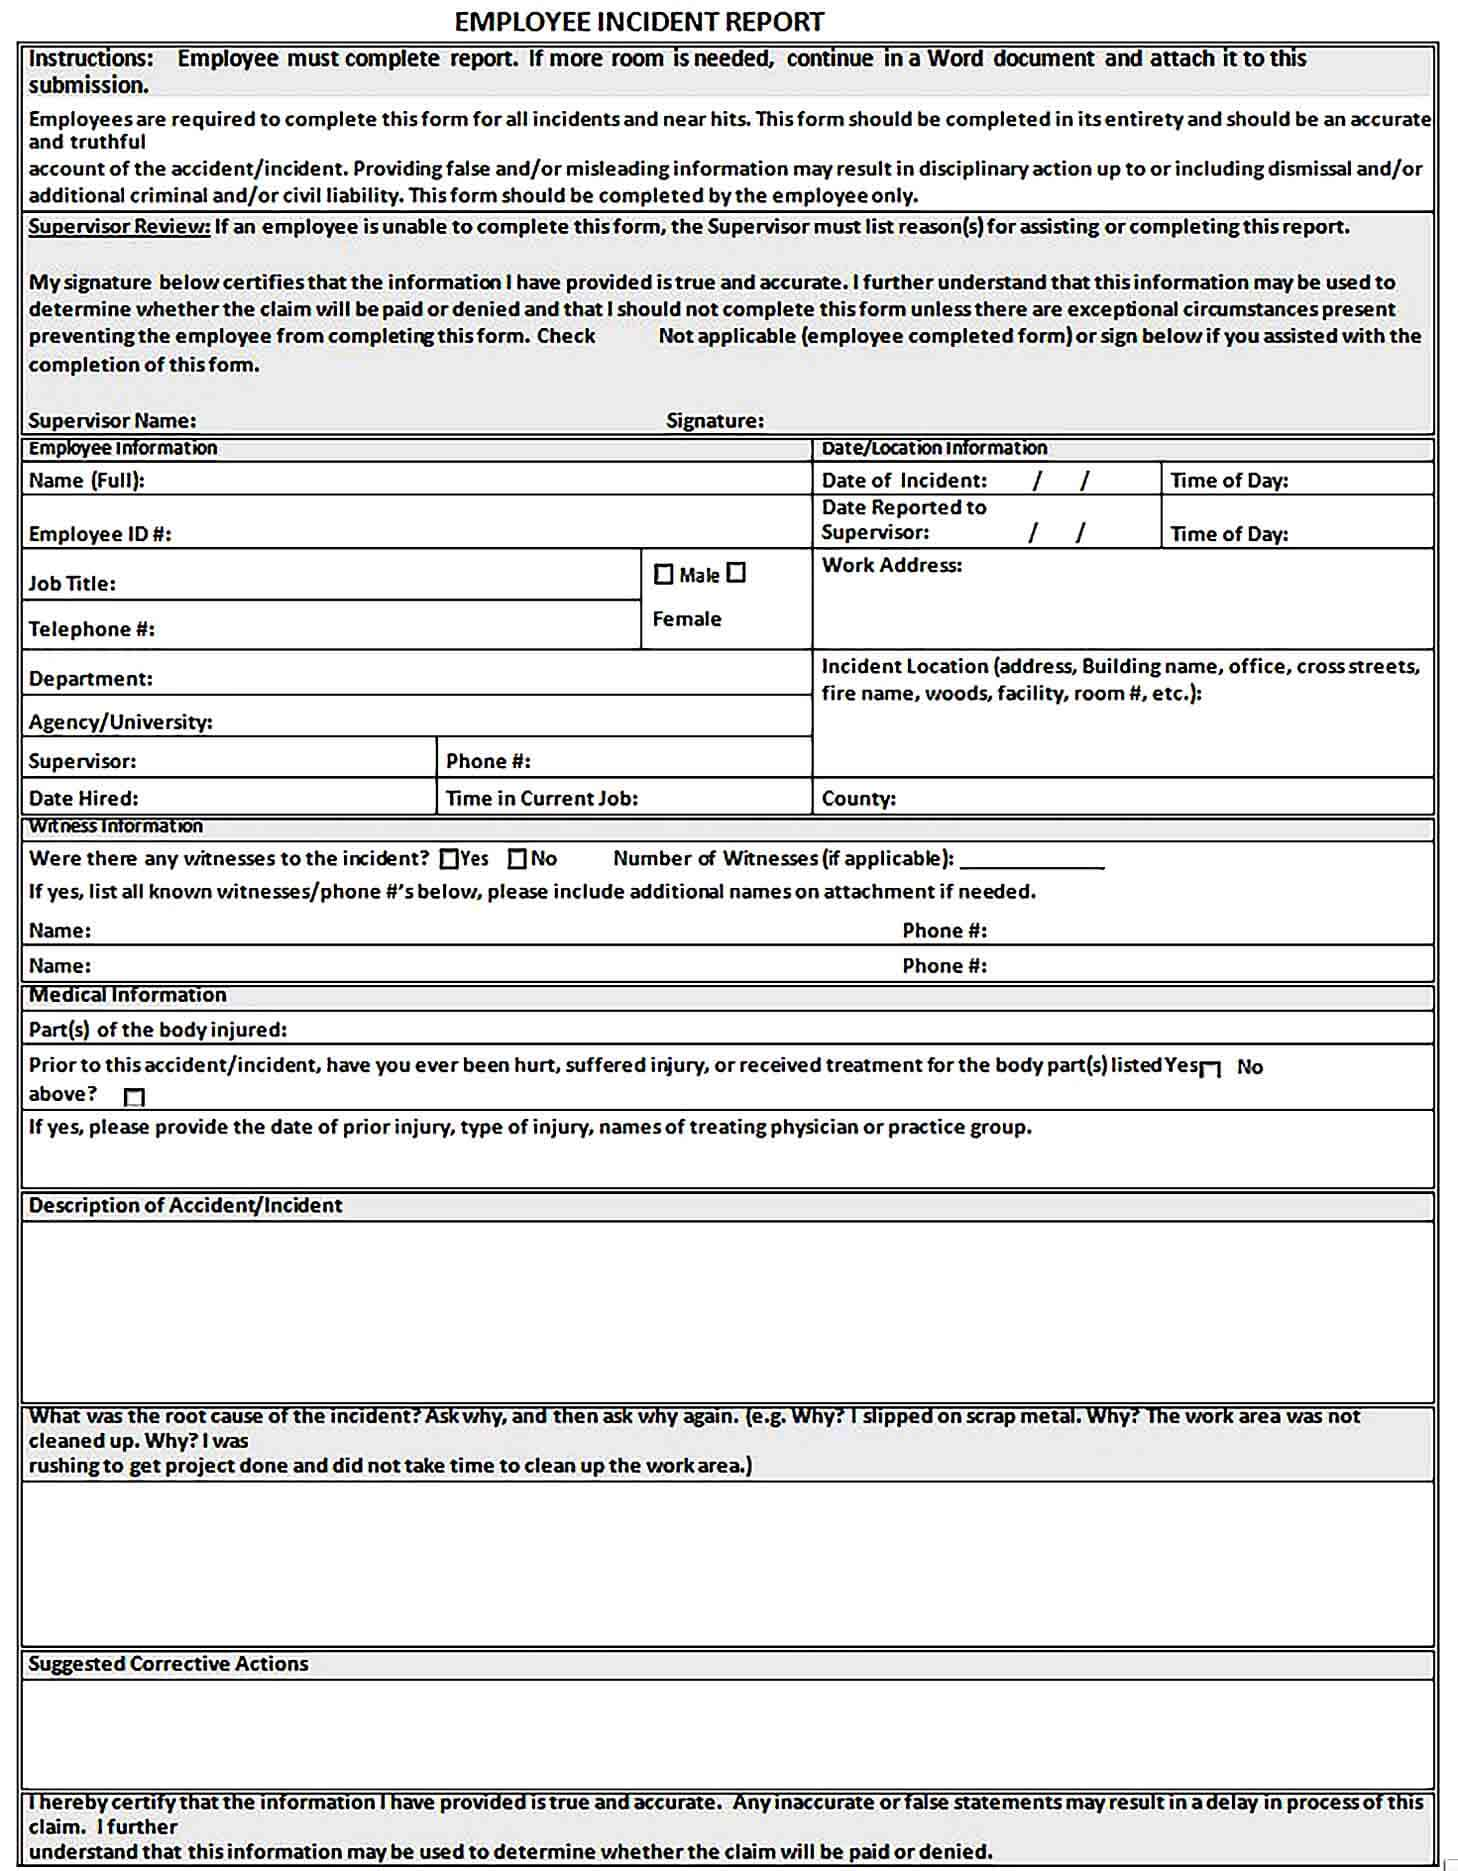 Sample Employee Incident Report Template in PDF